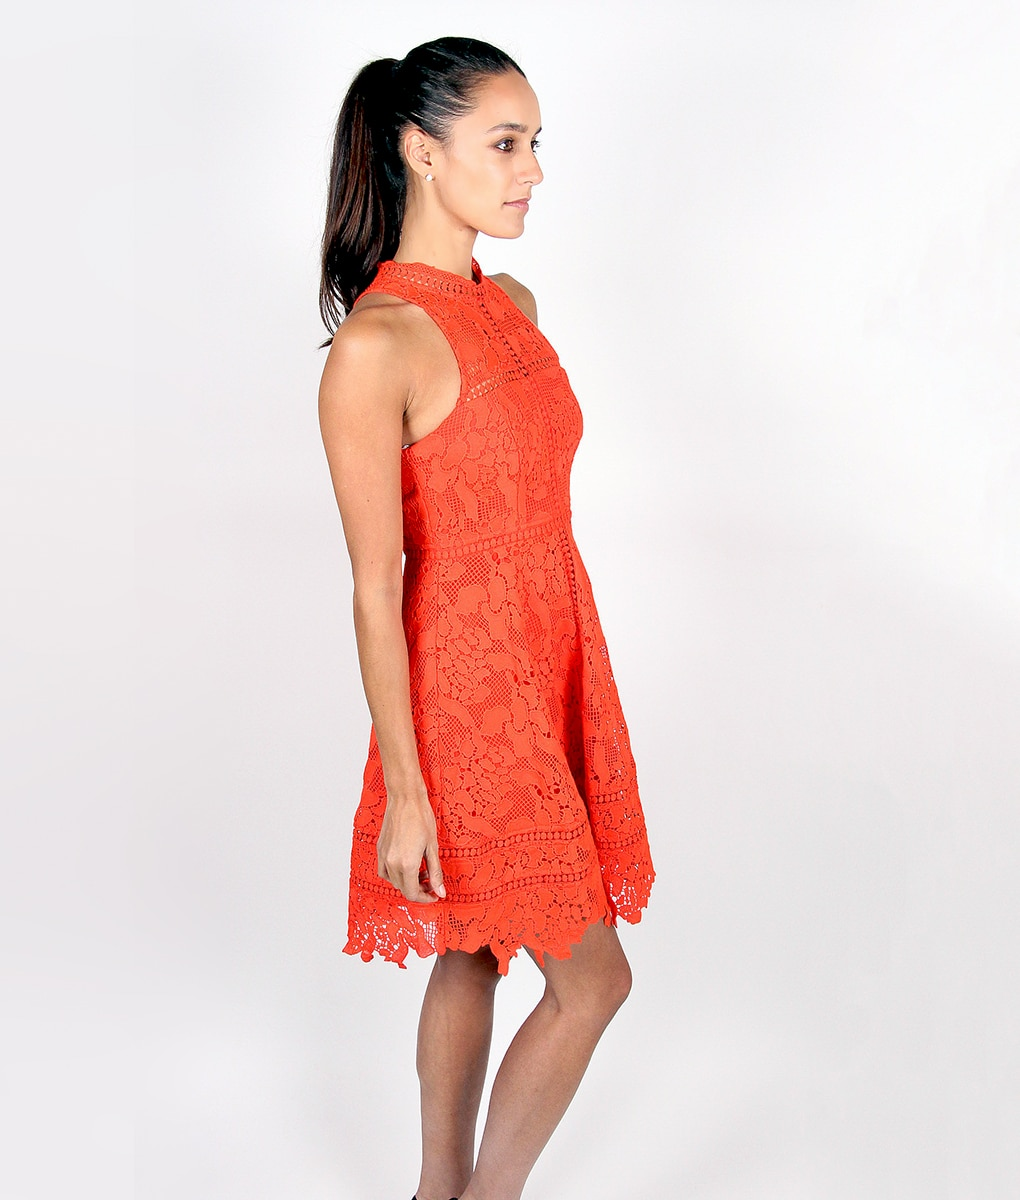 Alila-Tomatoe-Red-Lace-Crochet-Dress-by-Lumier-by-Bariano-side